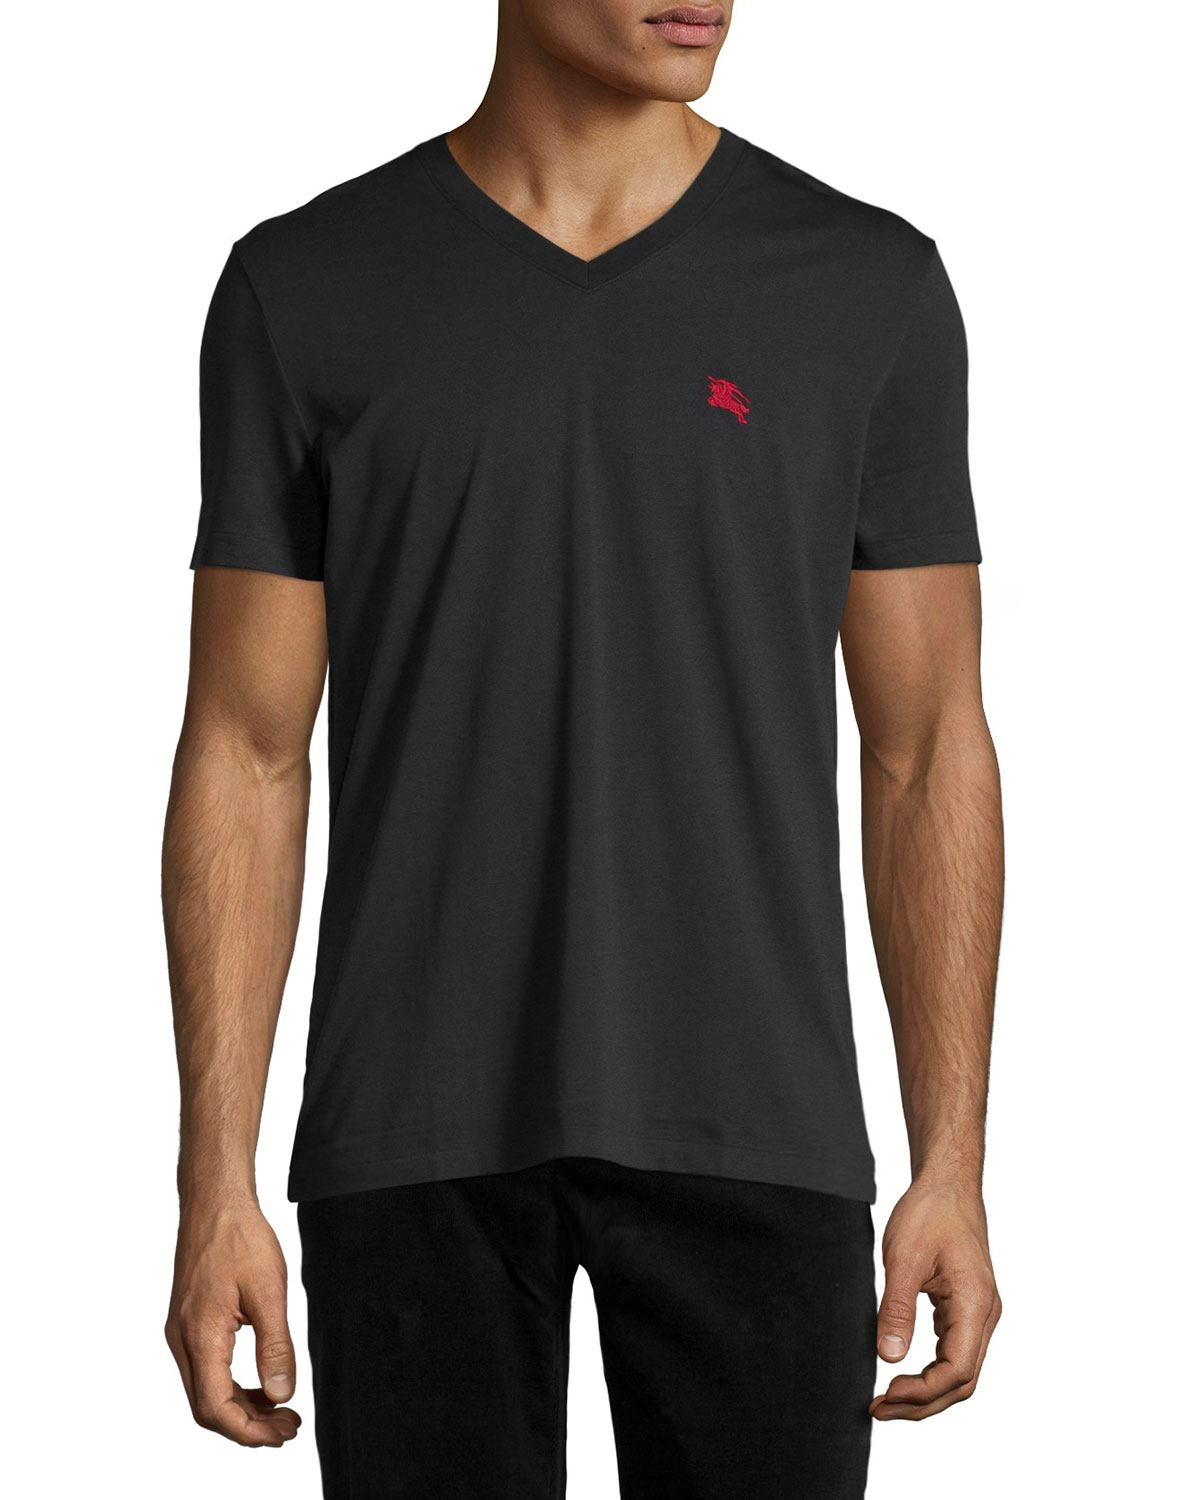 Lindon Cotton V-Neck T-Shirt, Black